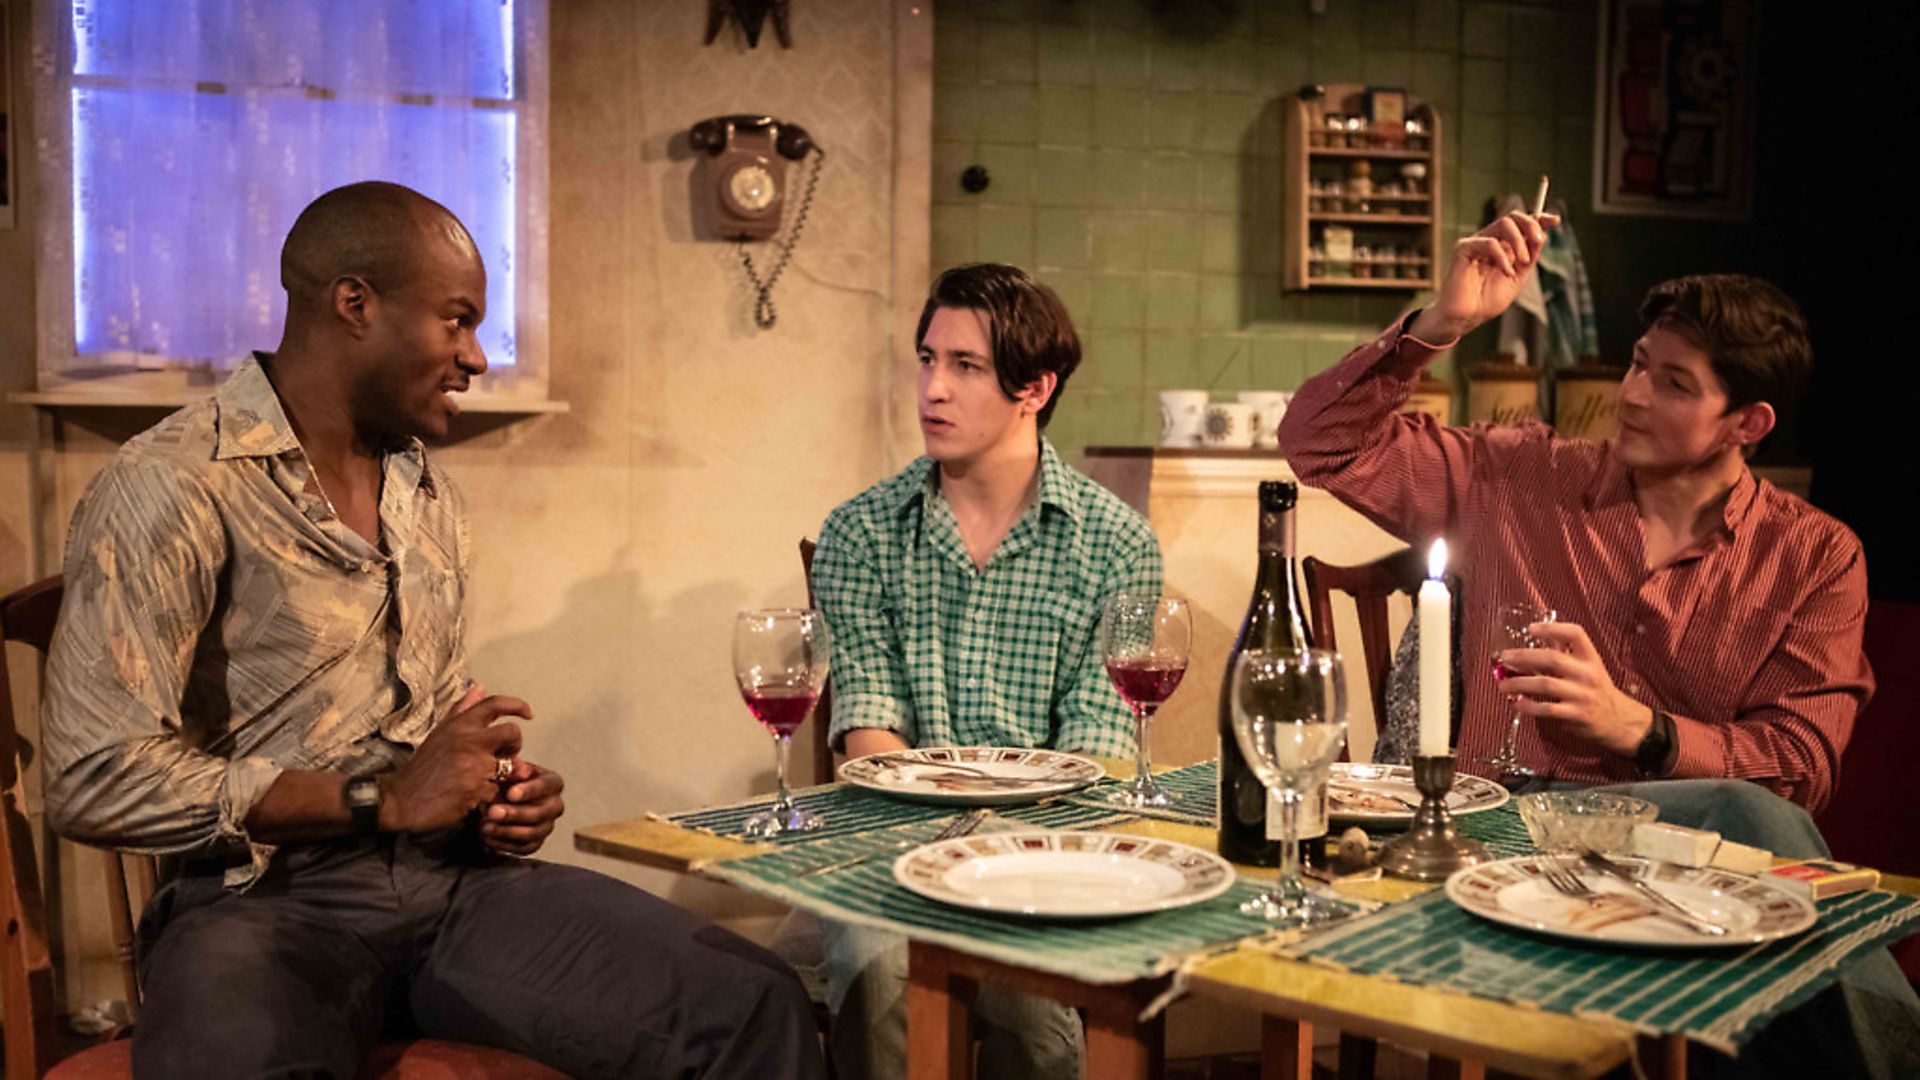 Stanton Plummer-Cambridge as Greg, Jonah Rzeskiewicz as Robert & Lee Knight as Tony in Coming Clean. Photograph: Ali Wright. - Credit: Archant